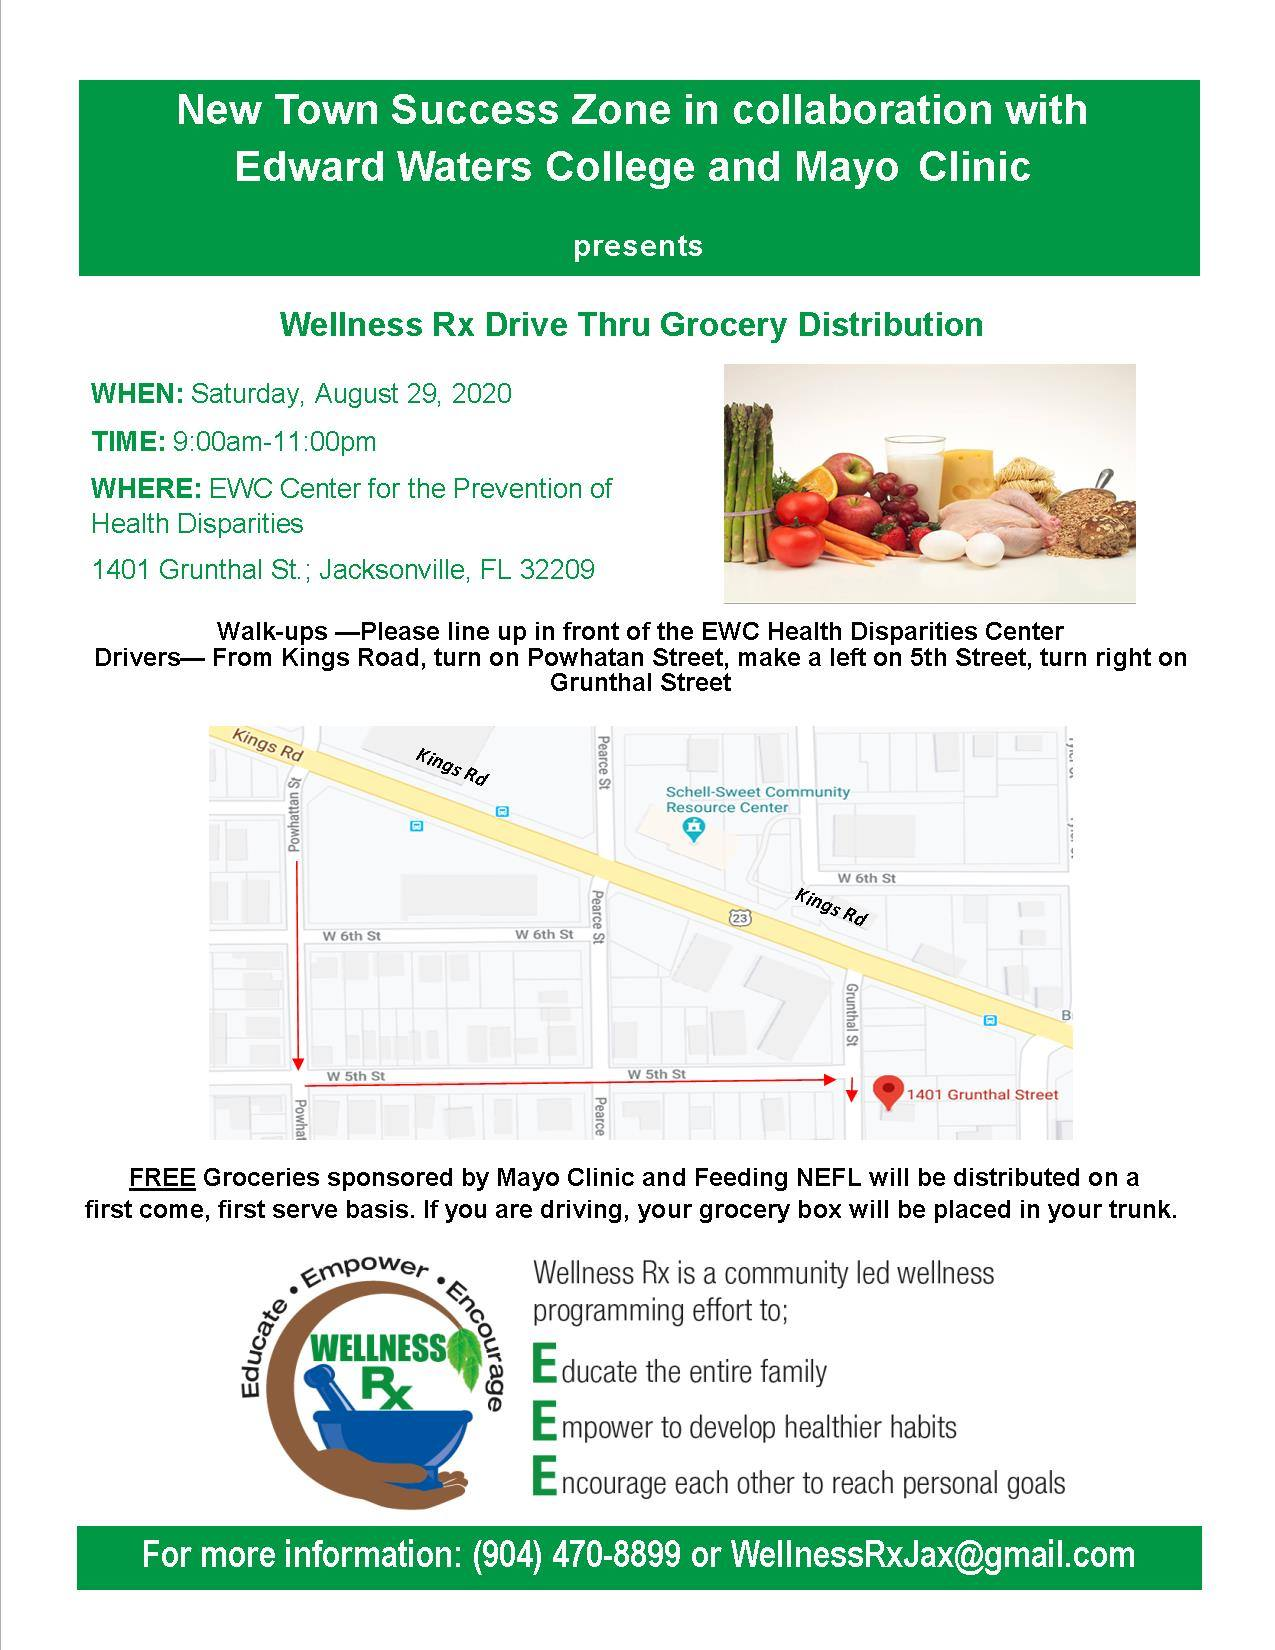 Wellness Rx Grocery Distribution